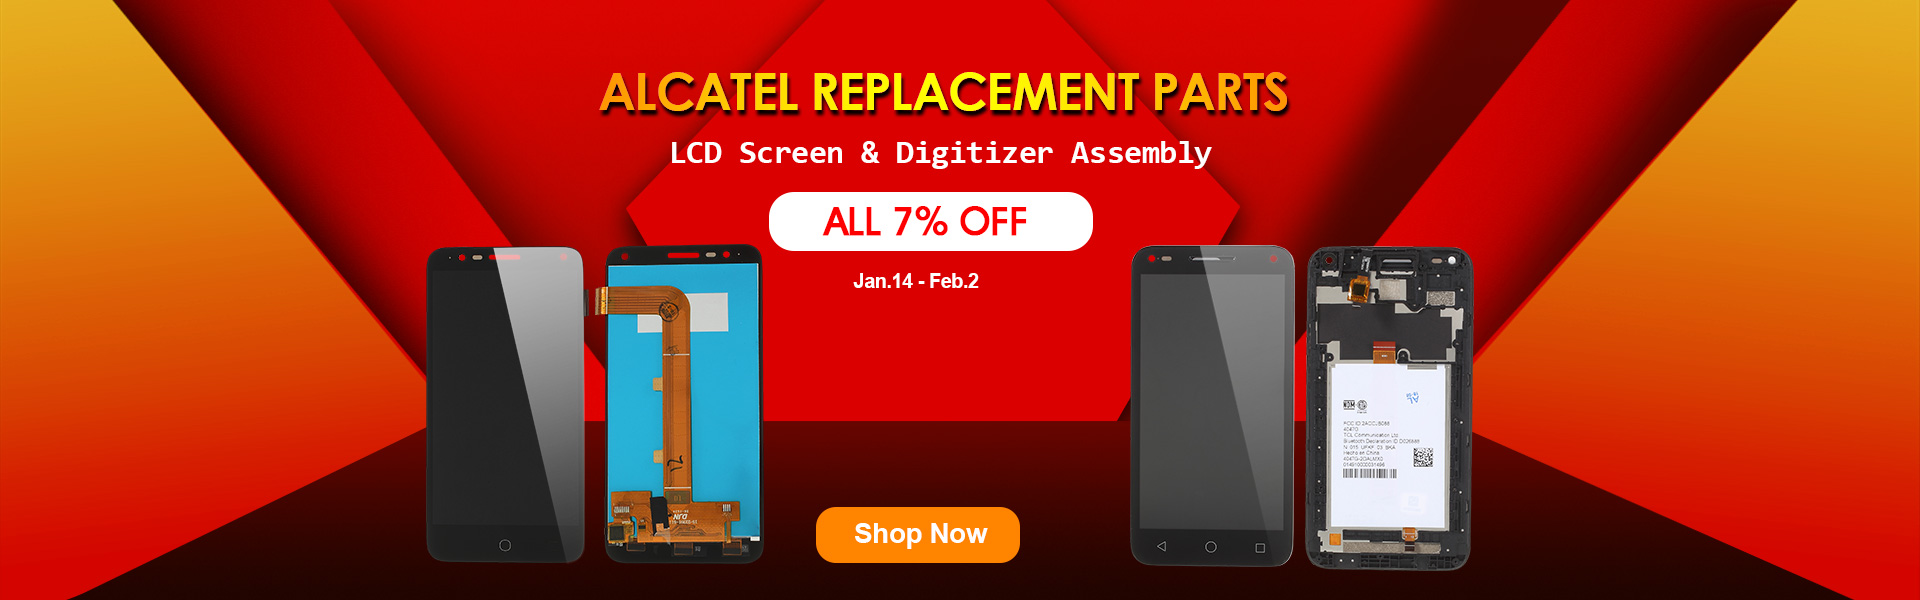 Ipartsexpert Unveiled A Full Lineup Of New Phone Parts To Global Customers